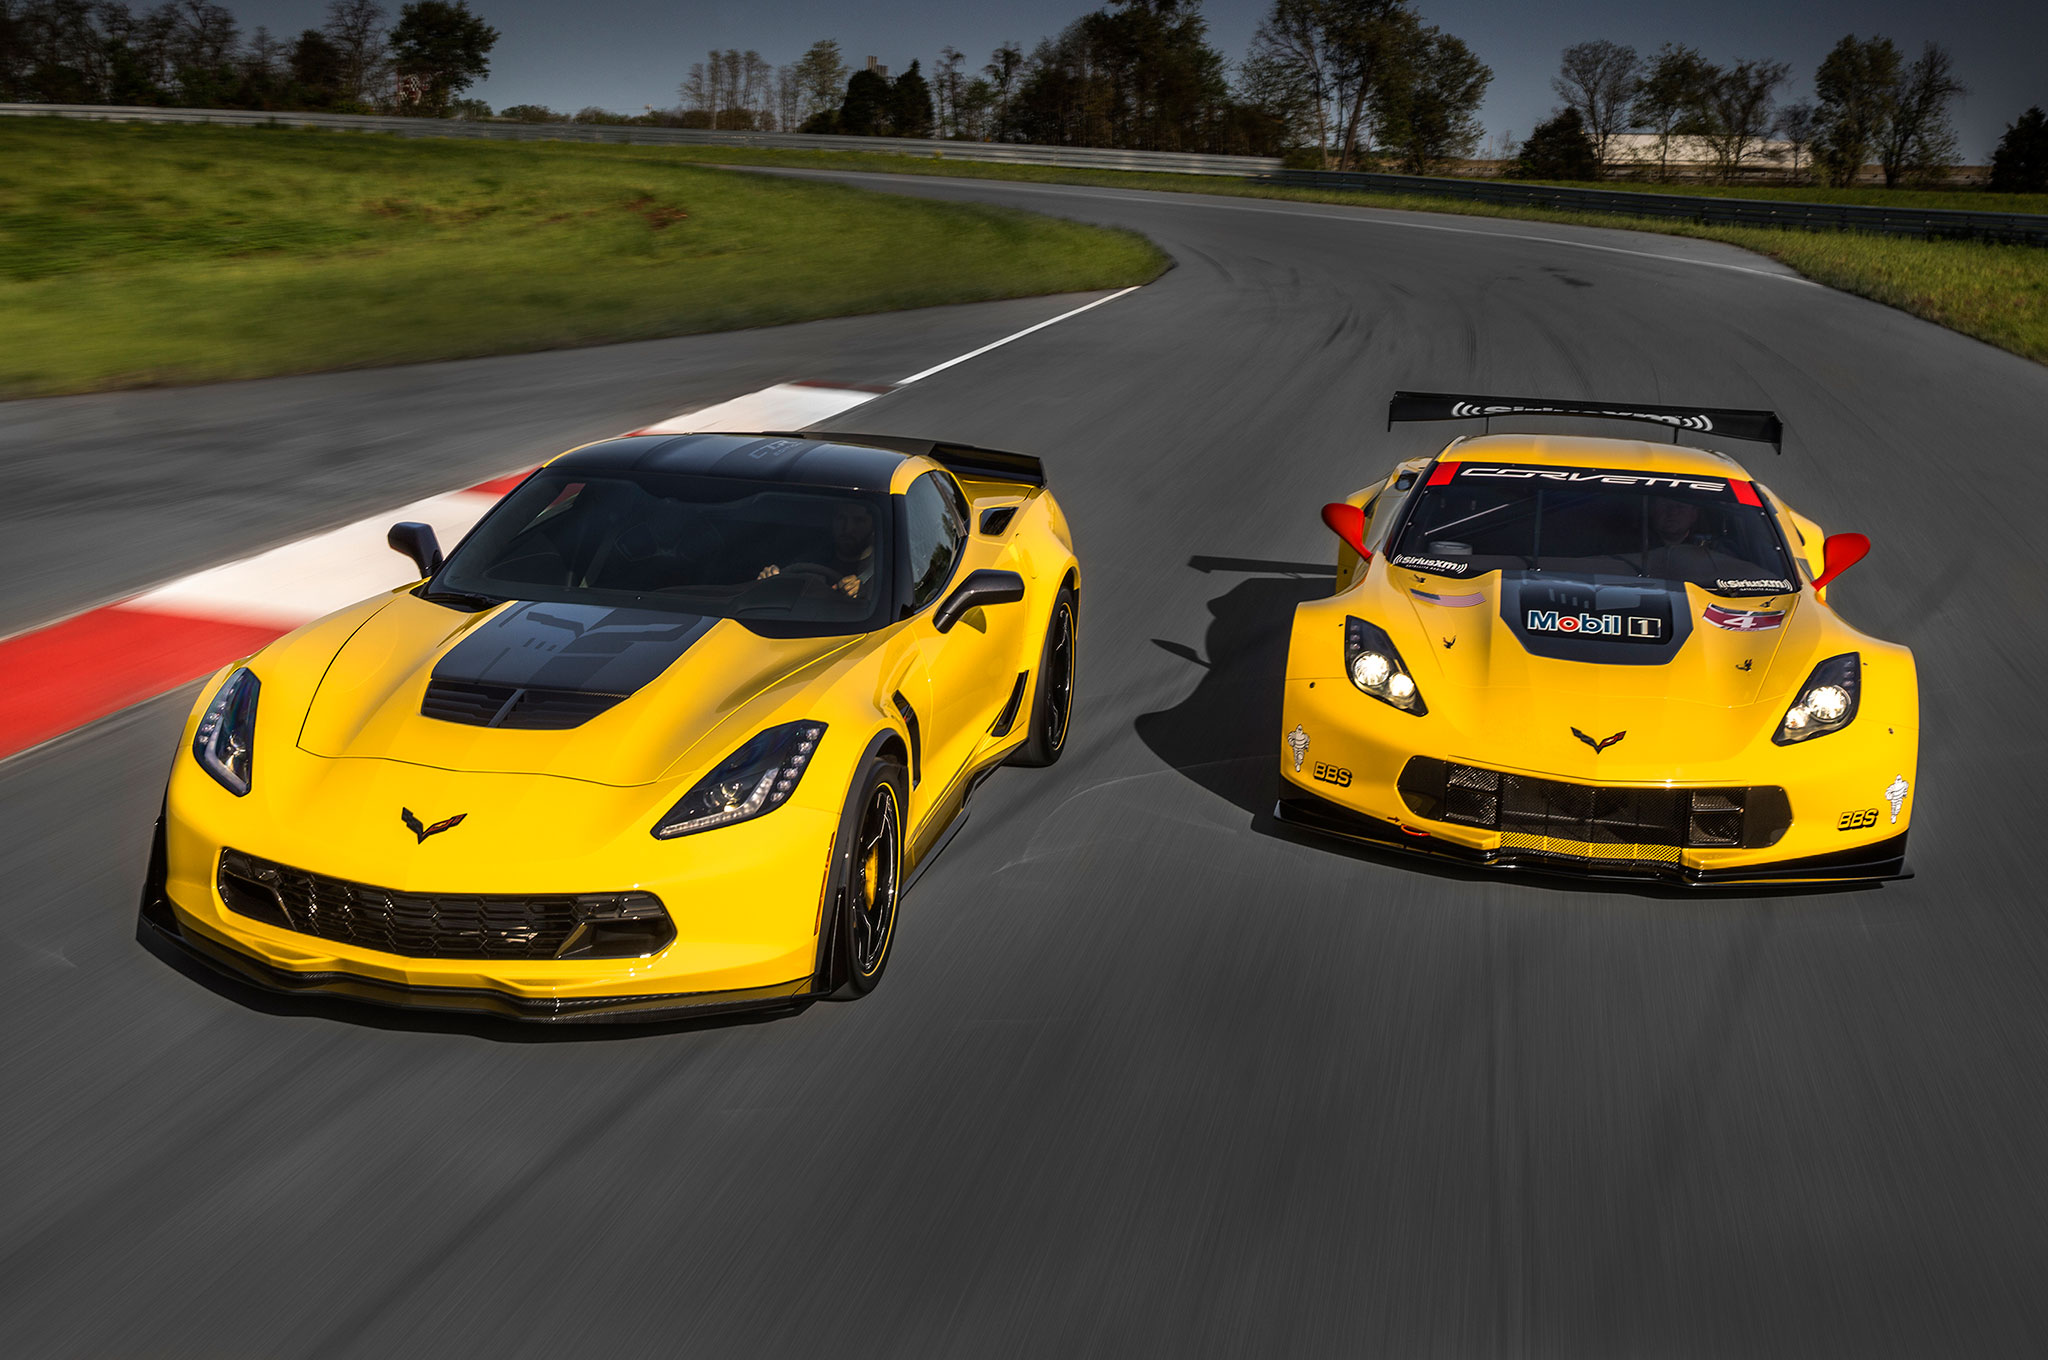 Merveilleux 2016 Chevrolet Corvette Z06 C7R Edition With Racing Car 1